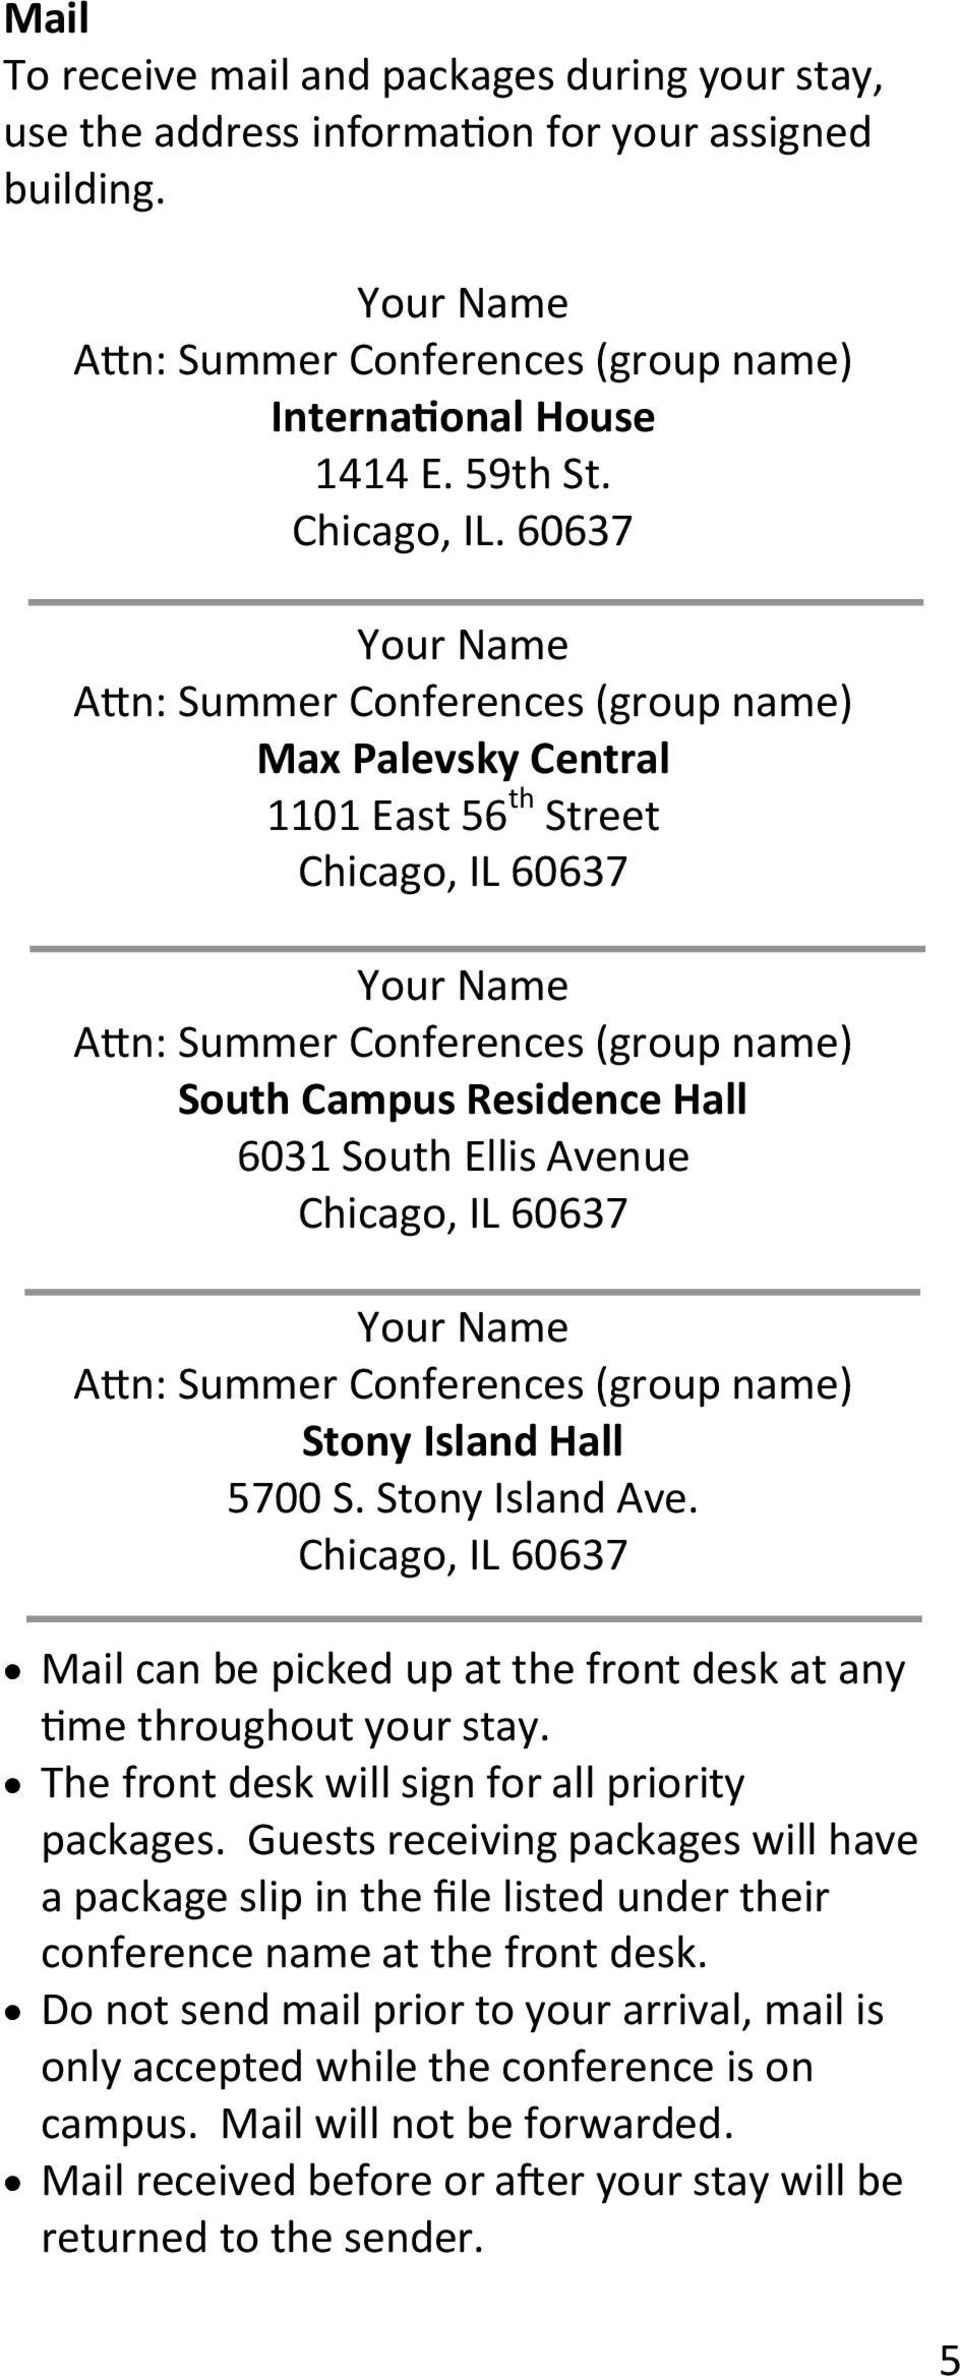 60637 Your Name Attn: Summer Conferences (group name) Max Palevsky Central 1101 East 56 th Street Chicago, IL 60637 Your Name Attn: Summer Conferences (group name) South Campus Residence Hall 6031